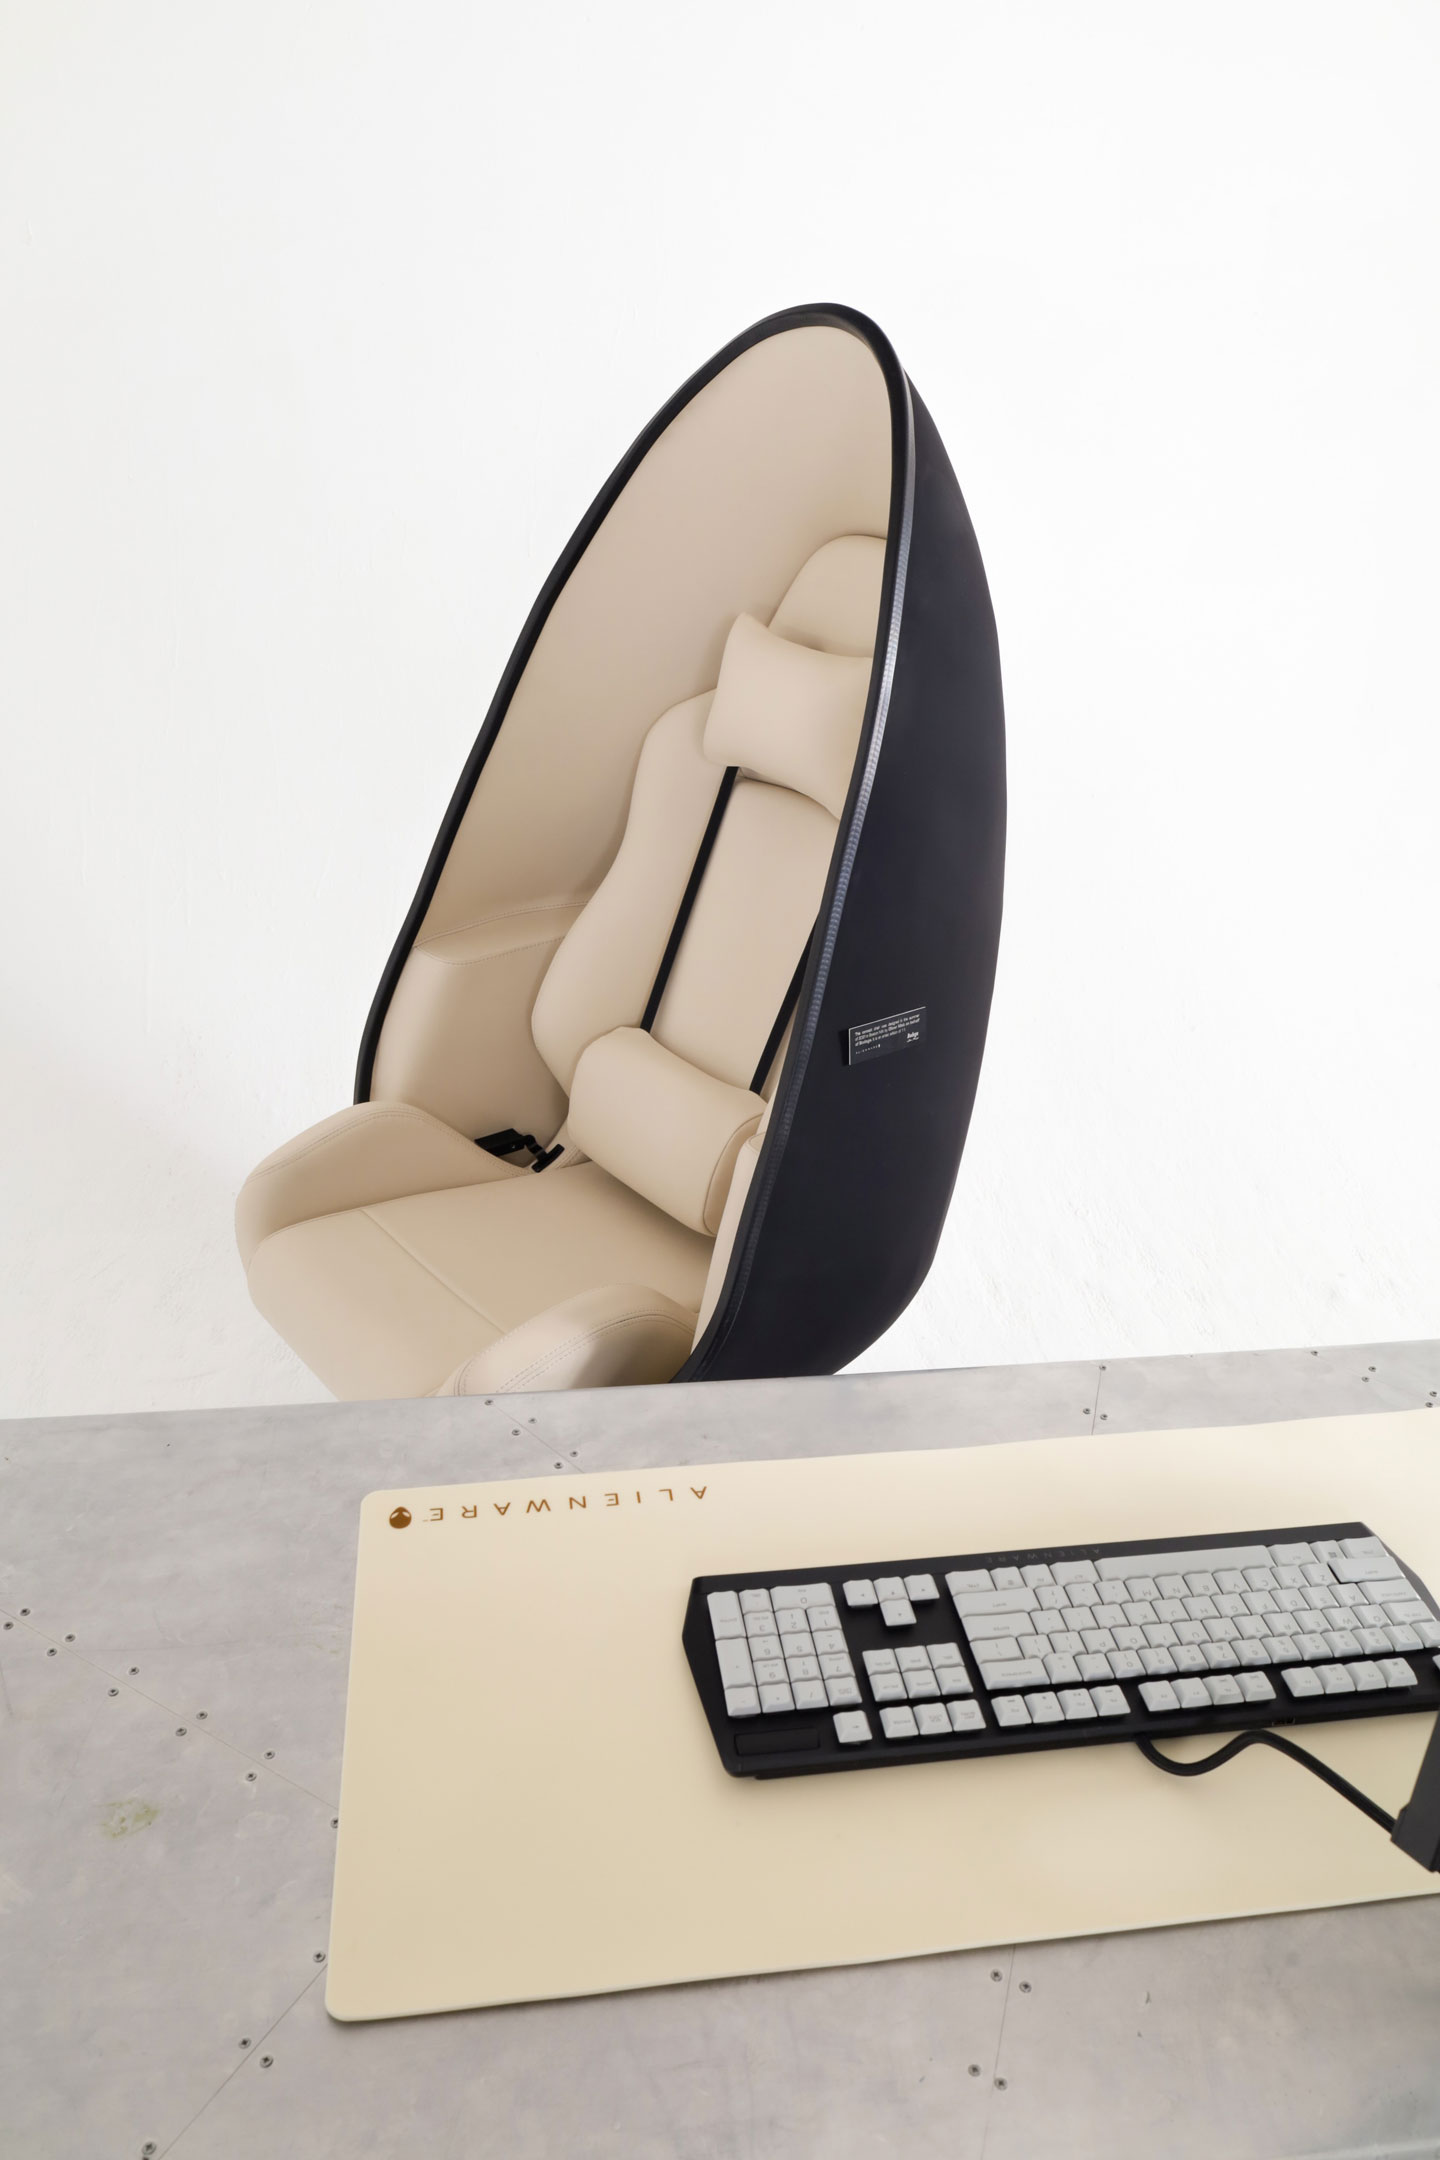 S5000 chair and keyboard